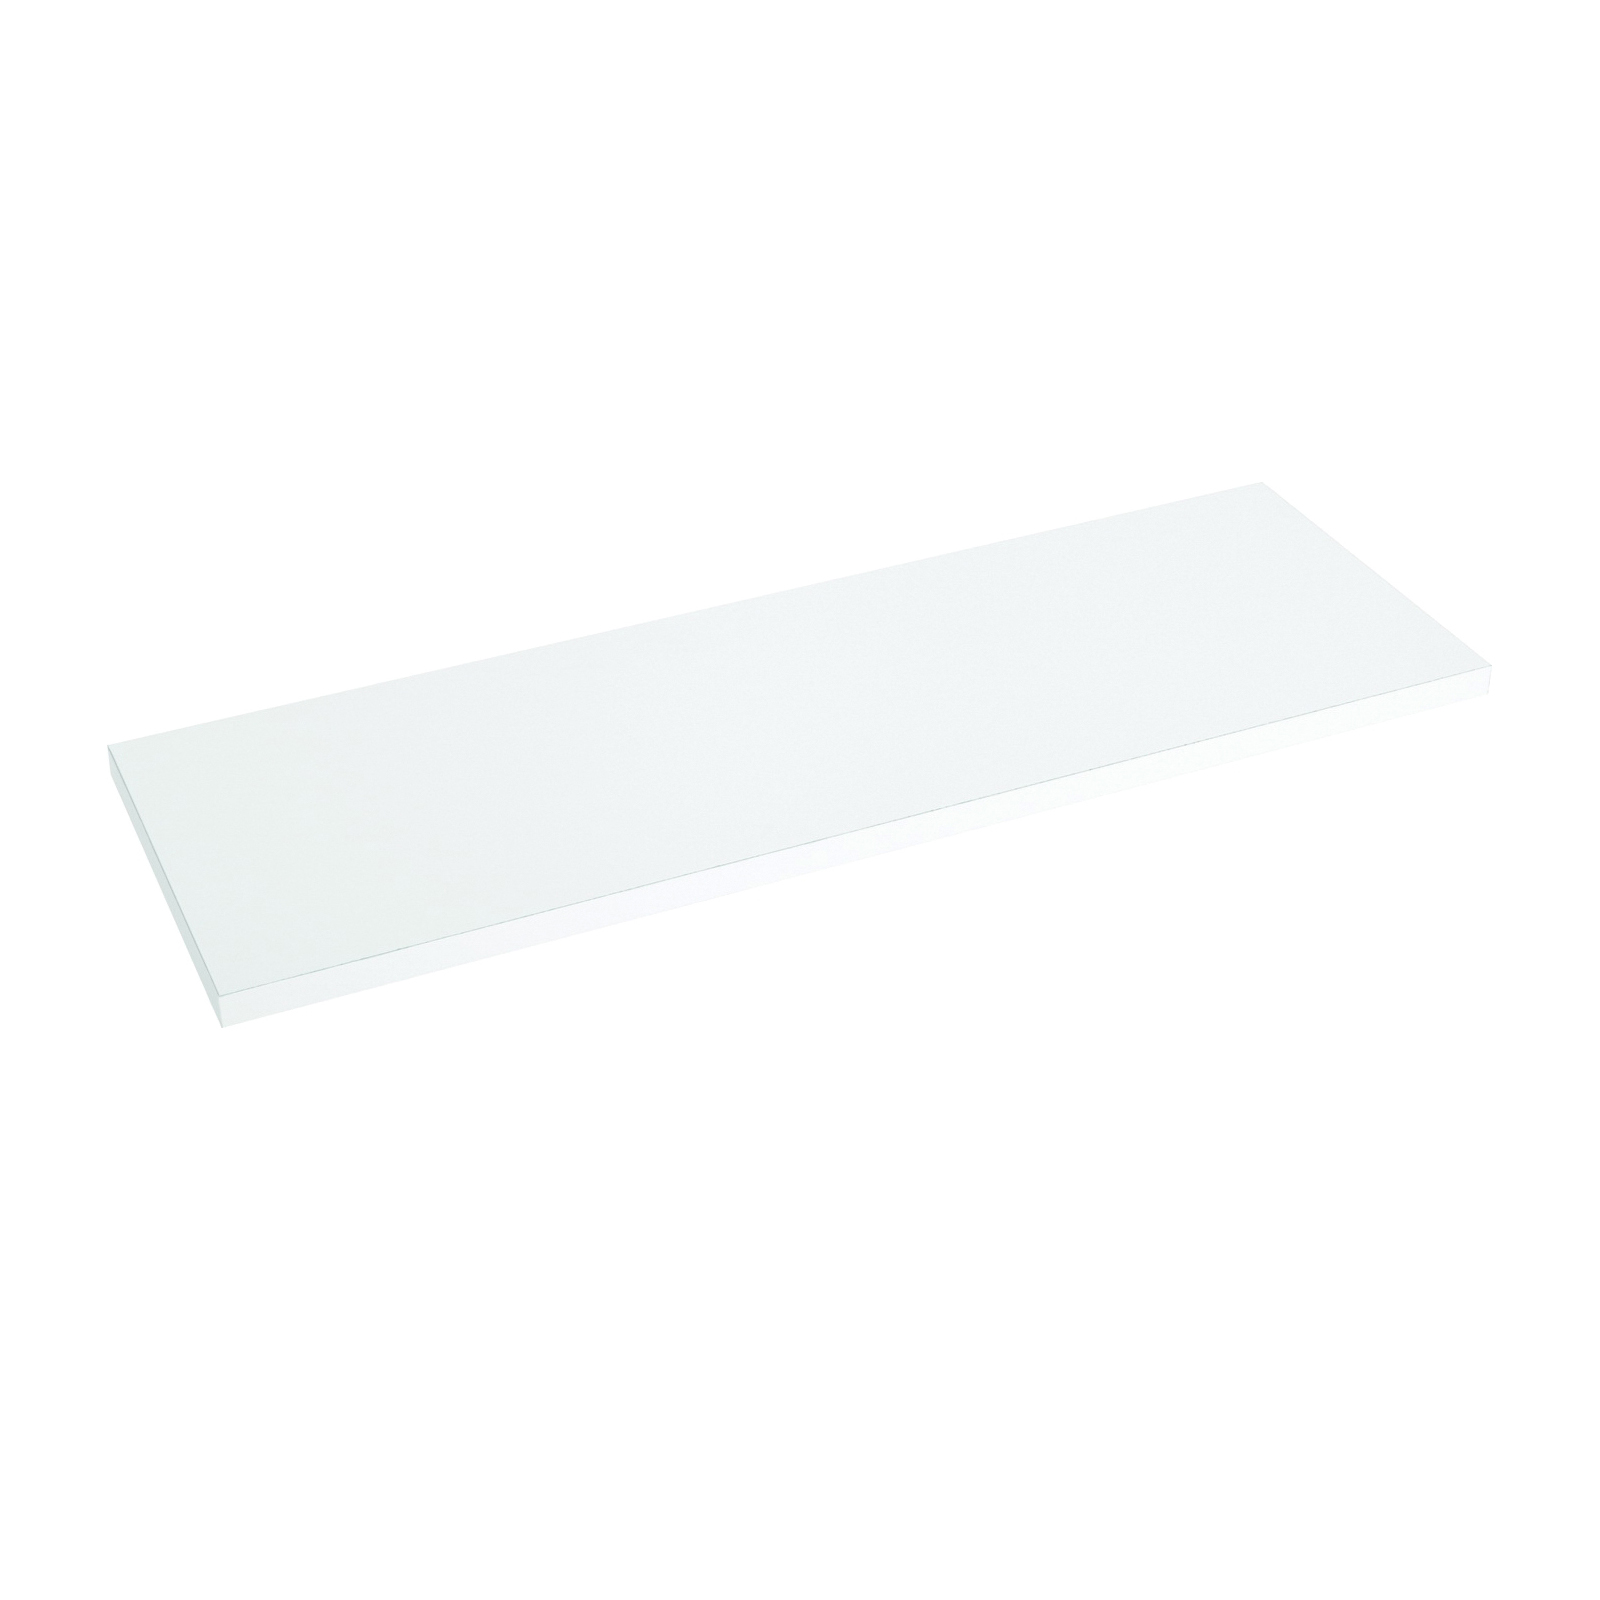 Picture of Knape & Vogt 1980 WH 12X24 Shelf Board, 200 lb, 5-Shelf, 24 in L, 12 in W, Particleboard